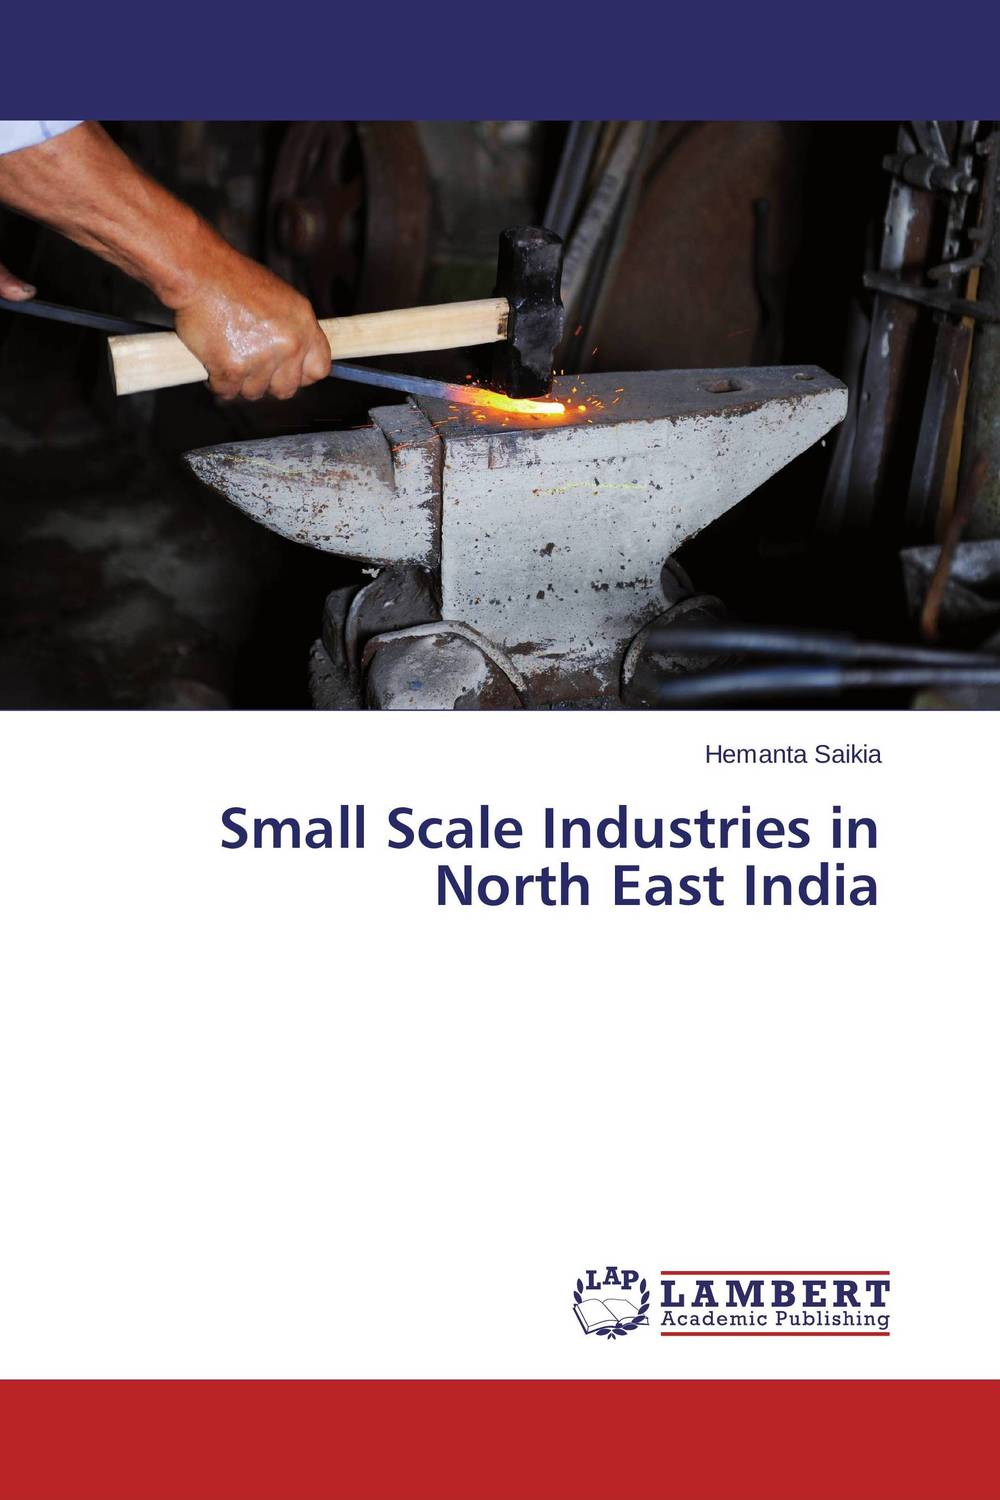 Small Scale Industries in North East India майка классическая printio sadhus of india